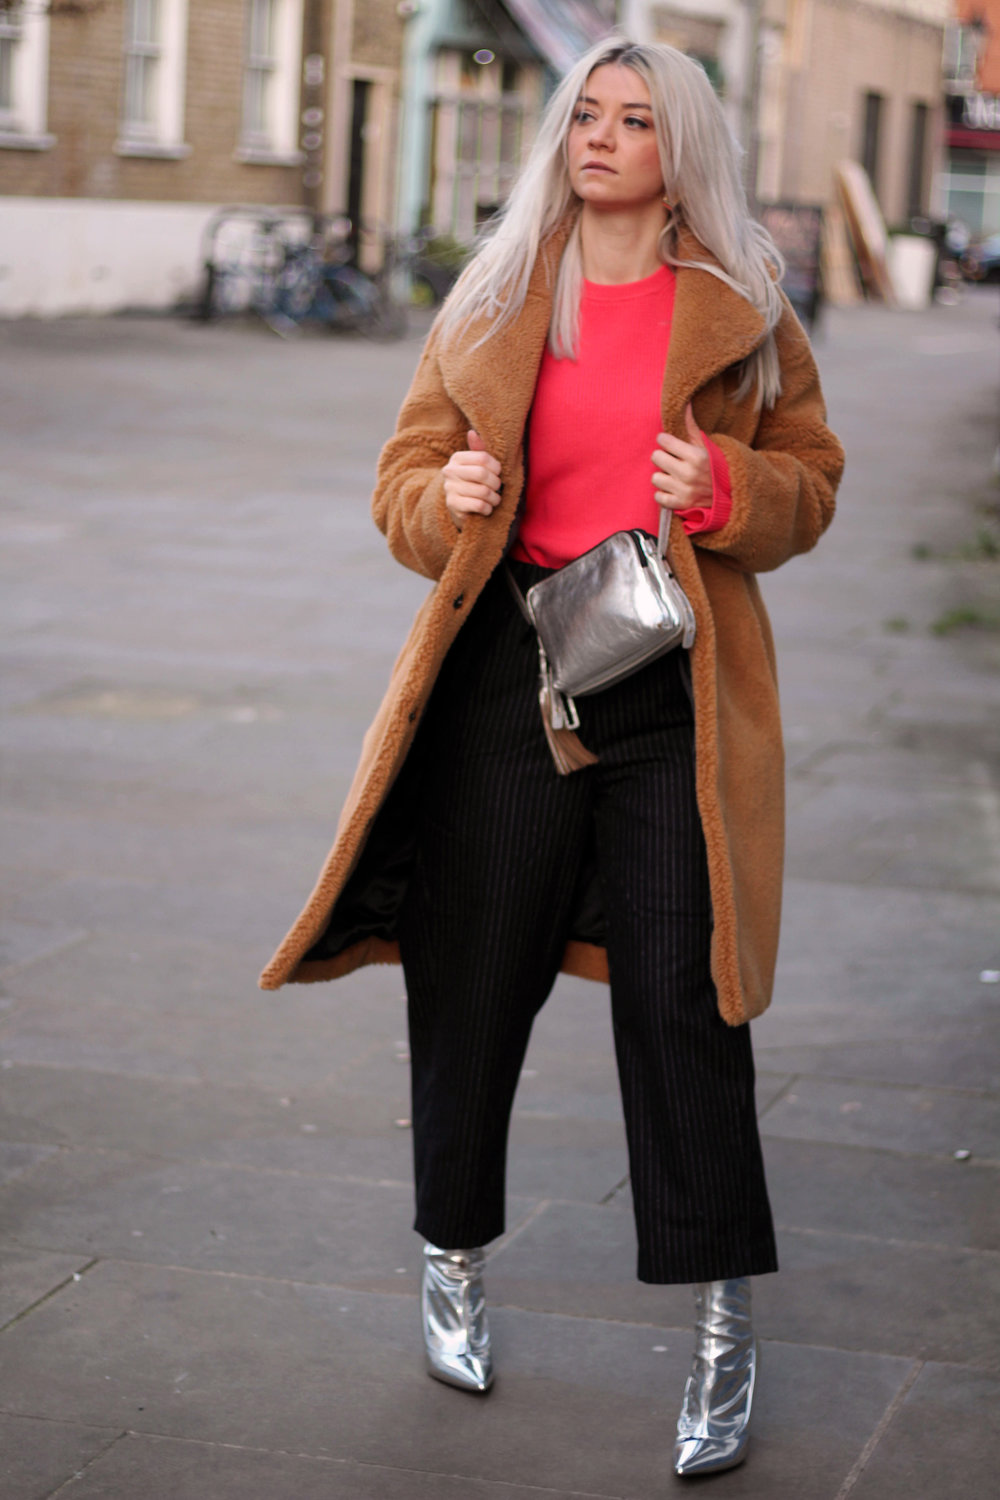 coral knitted michael kors top, pinstripe weekday trousers, silver metallic boots, teddy bear coat, northern magpie 3